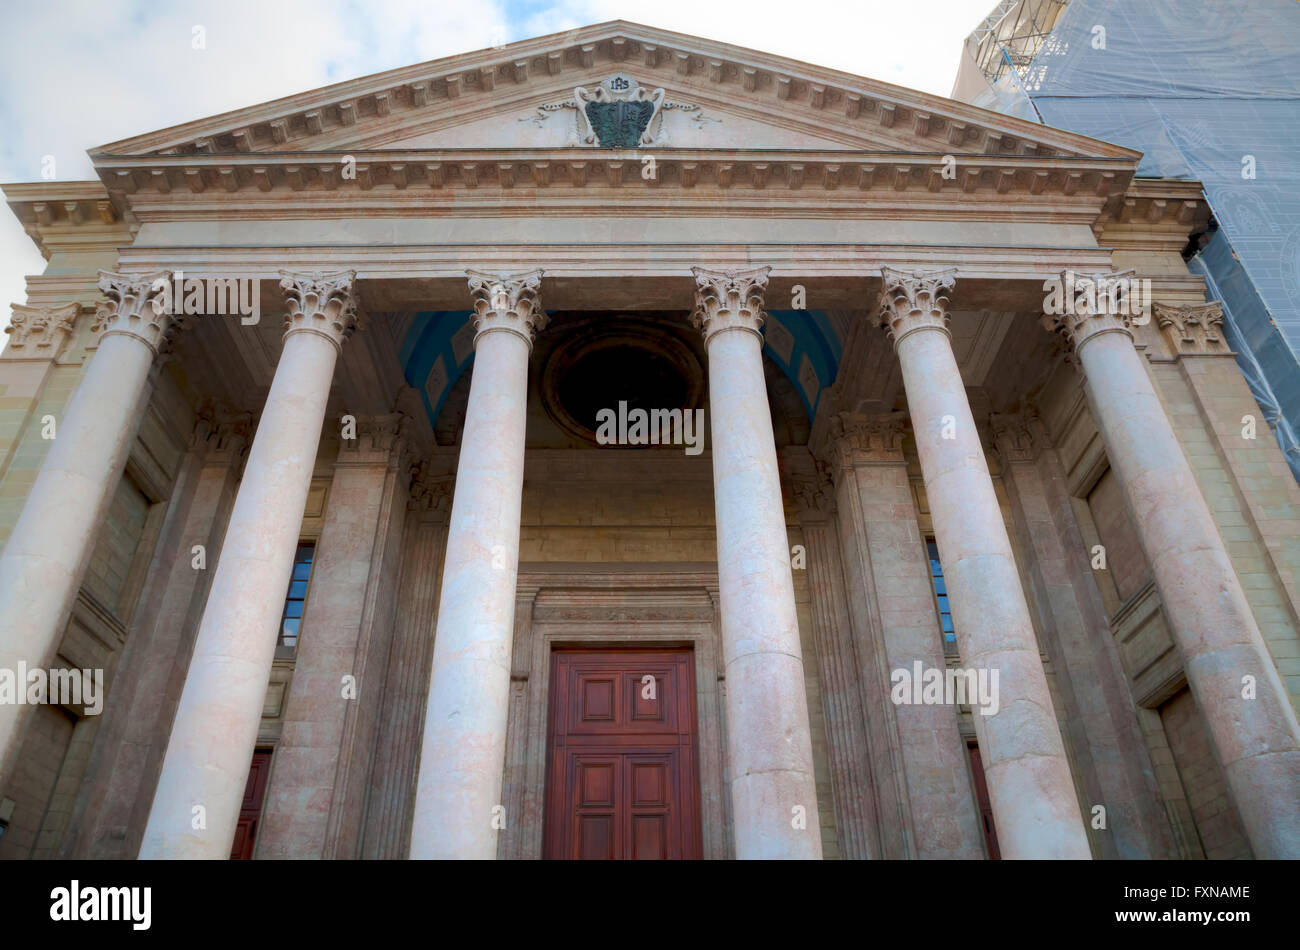 St Pierre Cathedral entrance in Geneva, Switzerland - Stock Image